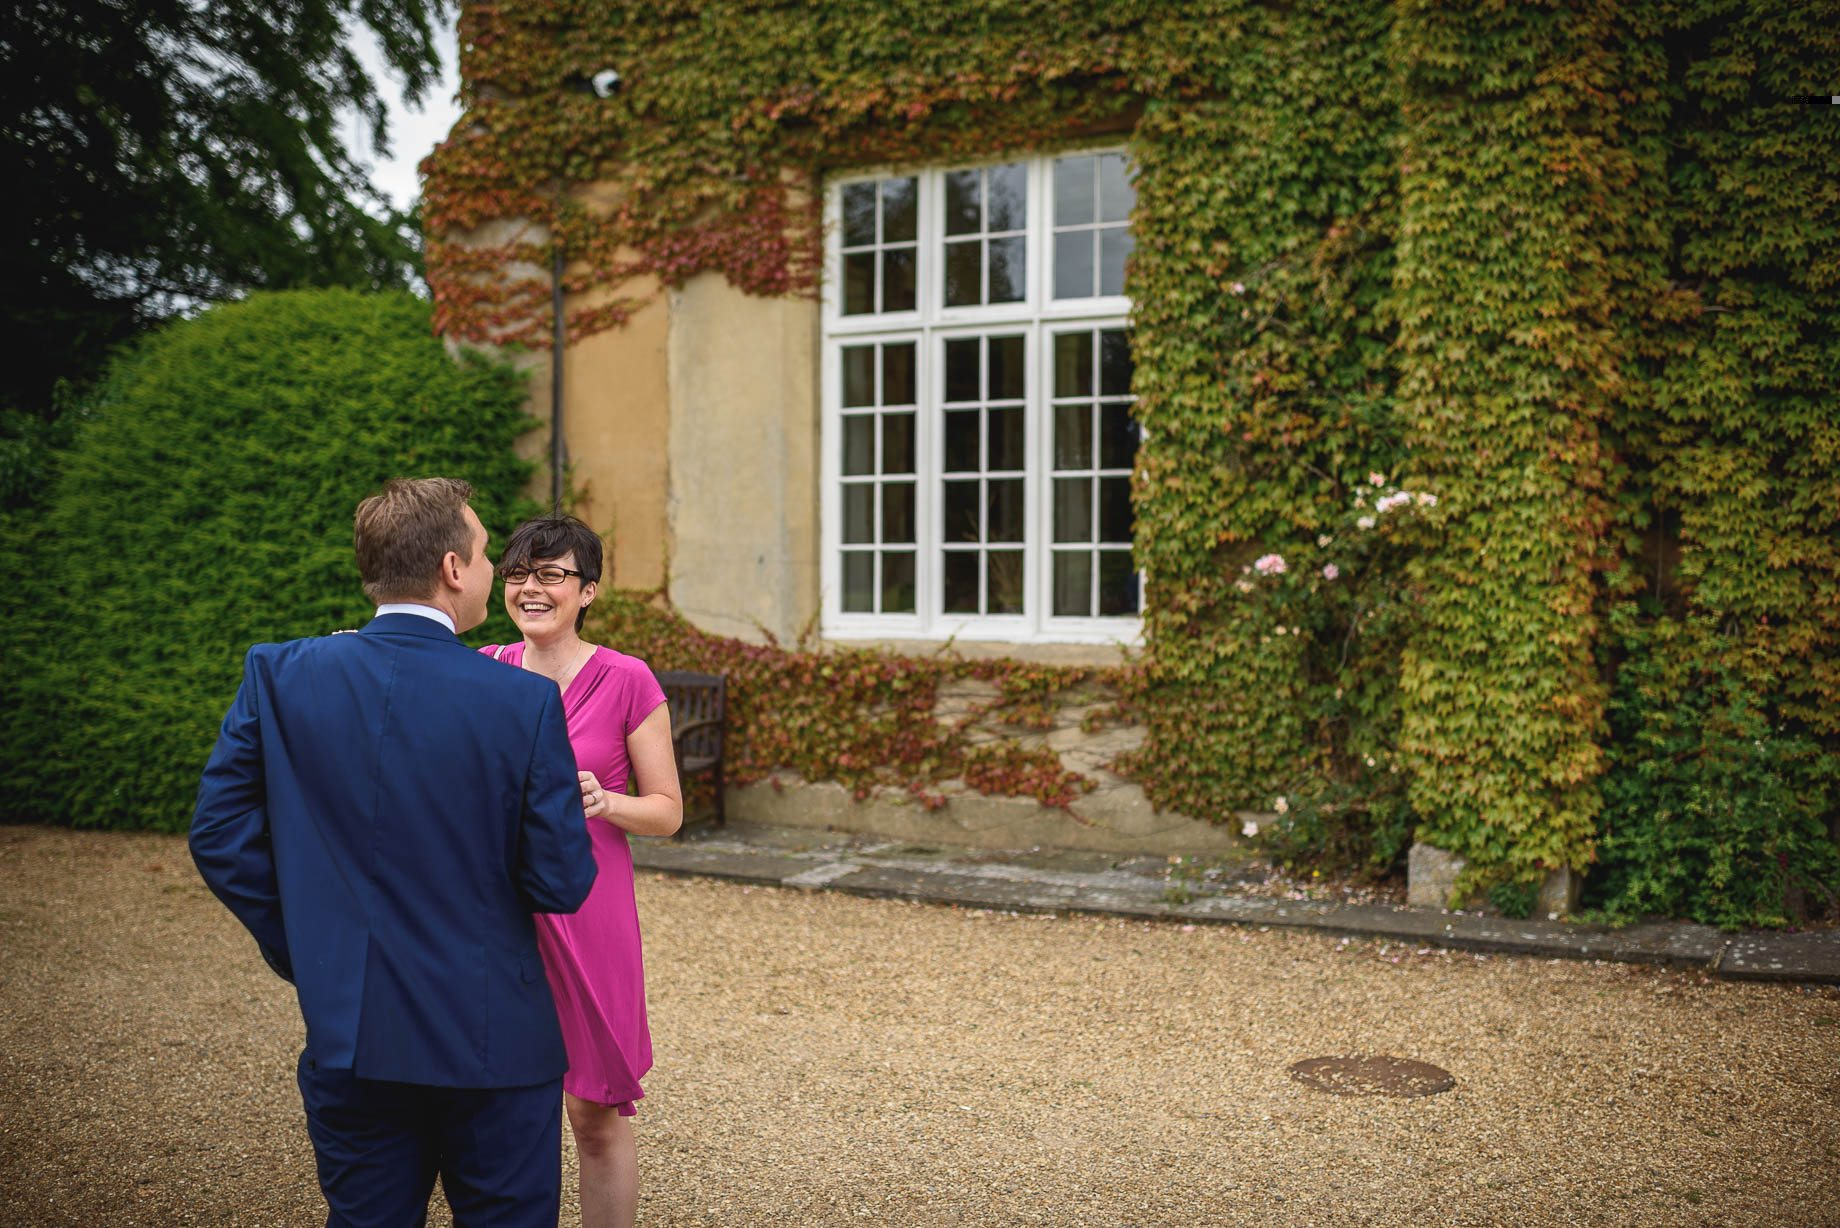 Hertfordshire wedding photography - Sarah and Stephen by Guy Collier Photography (94 of 161)